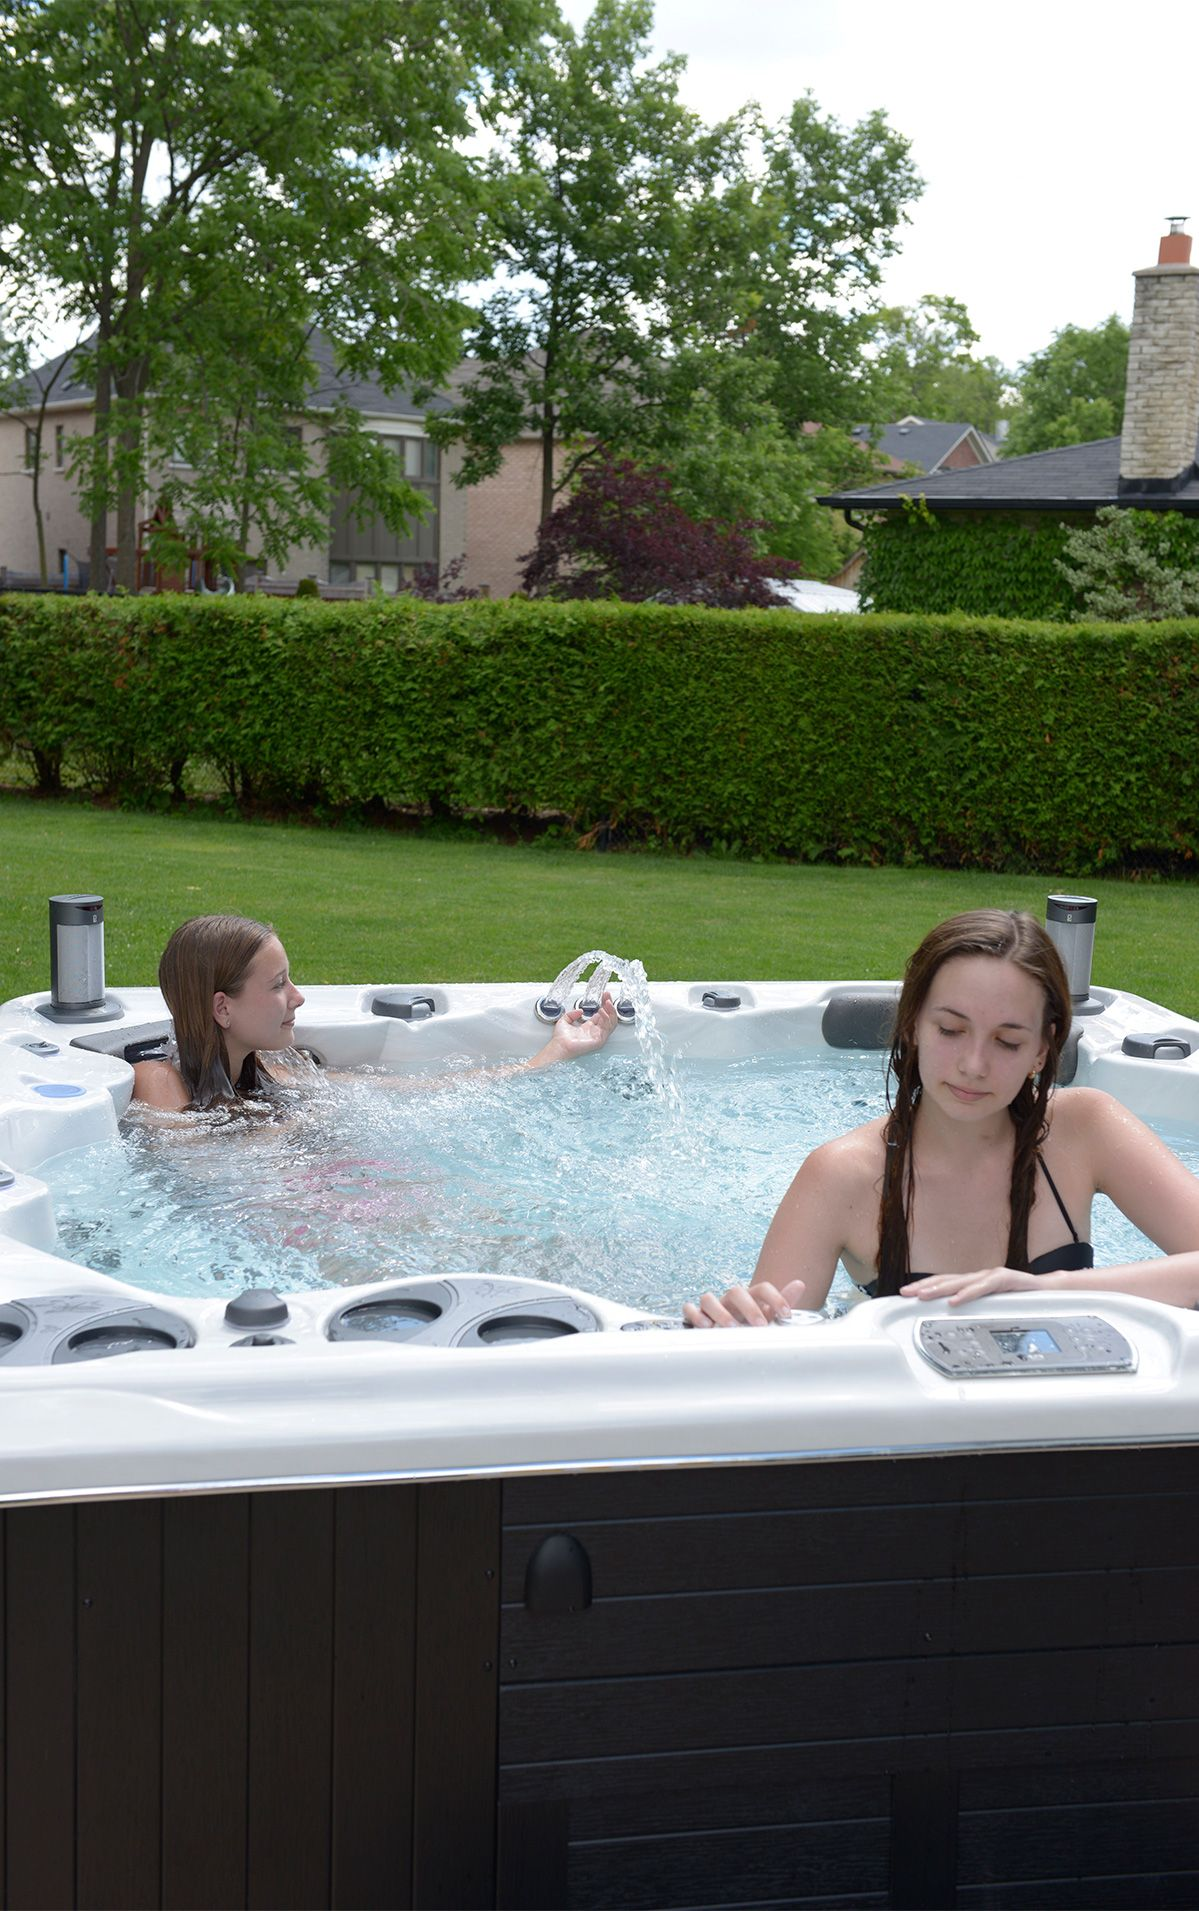 717b7f2c909 Hydropool hot tubs are completely customizable. Not only are you able to  change colours, you are also able to add options like stereos, waterfall  pillow, ...